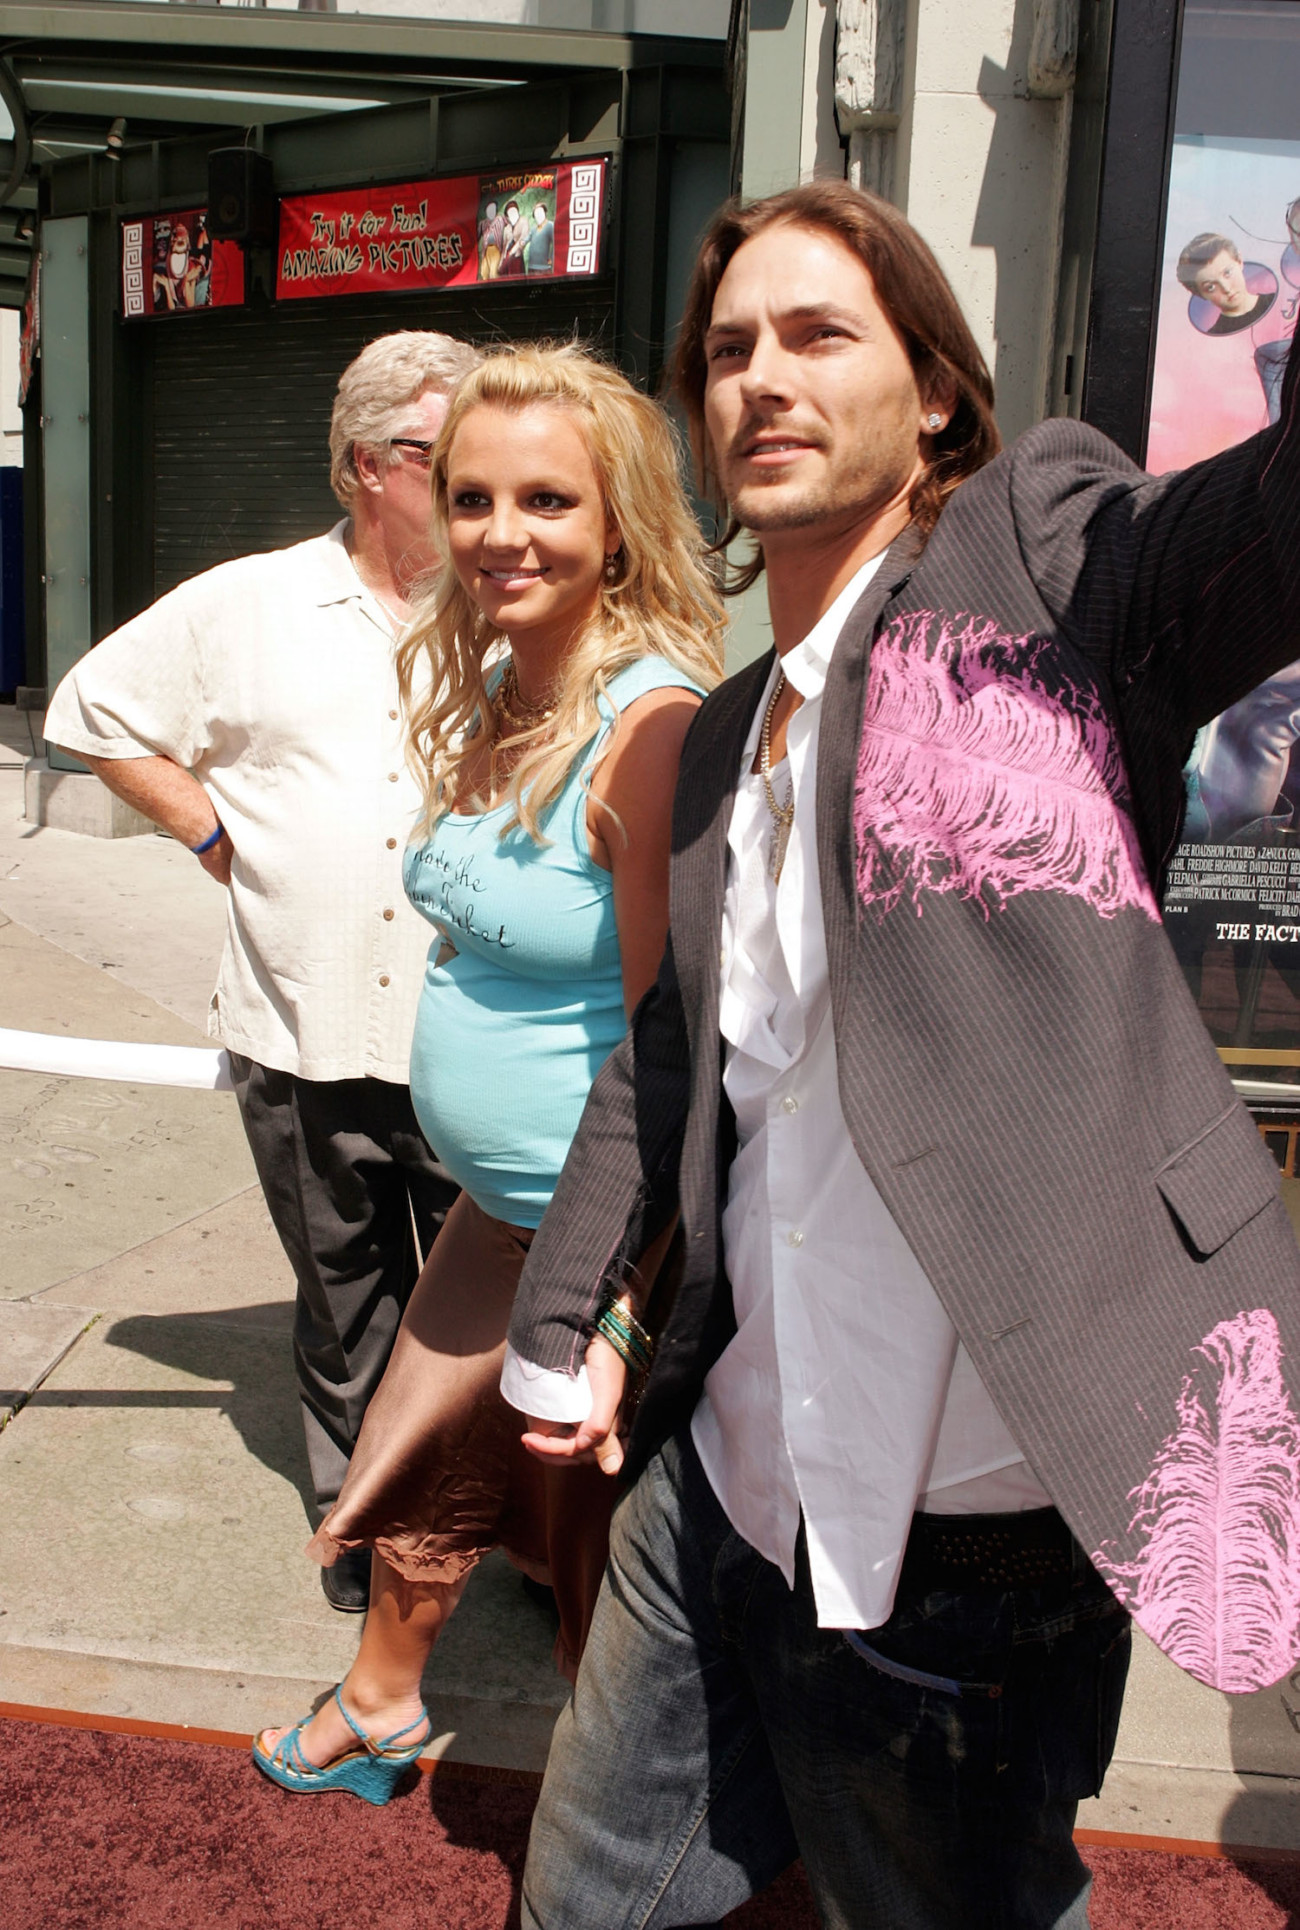 HOLLYWOOD - JULY 10:  Singer Britney Spears (L) and husband Kevin Federline arrive at the Warner Bros. Premiere of Charlie and the Chocolate Factory at the Grauman's Chinese Theatre on July 10, 2005 in Hollywood, California.  (Photo by Kevin Winter/Getty Images)